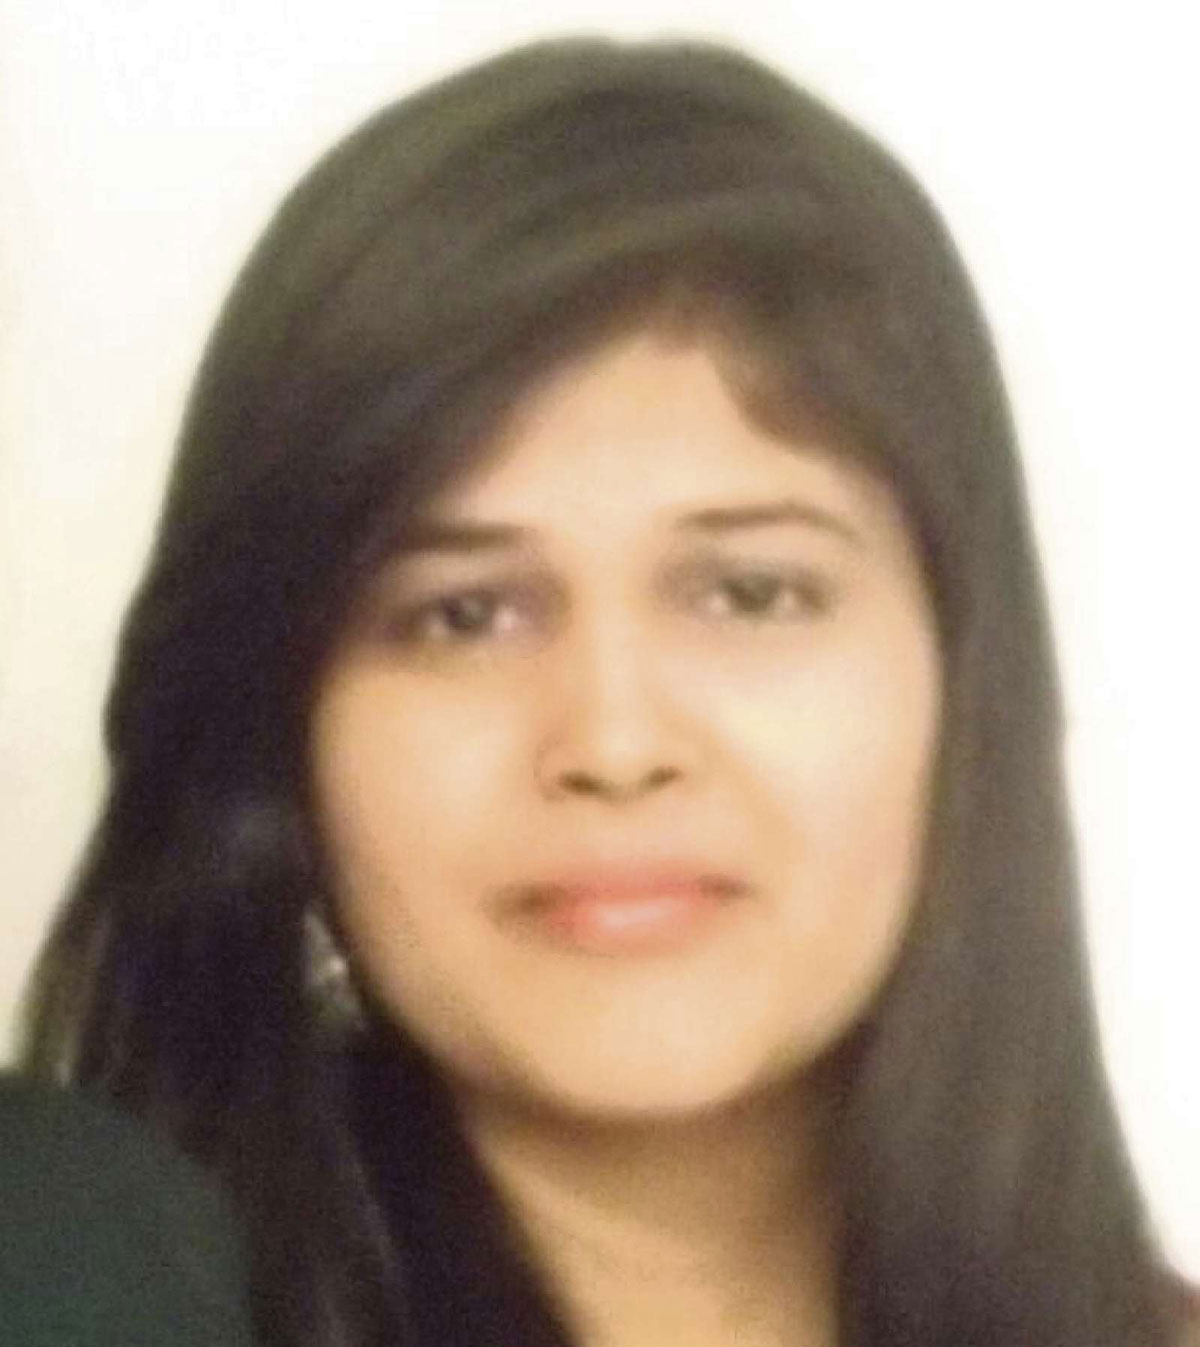 MISSING: Nida Naseer